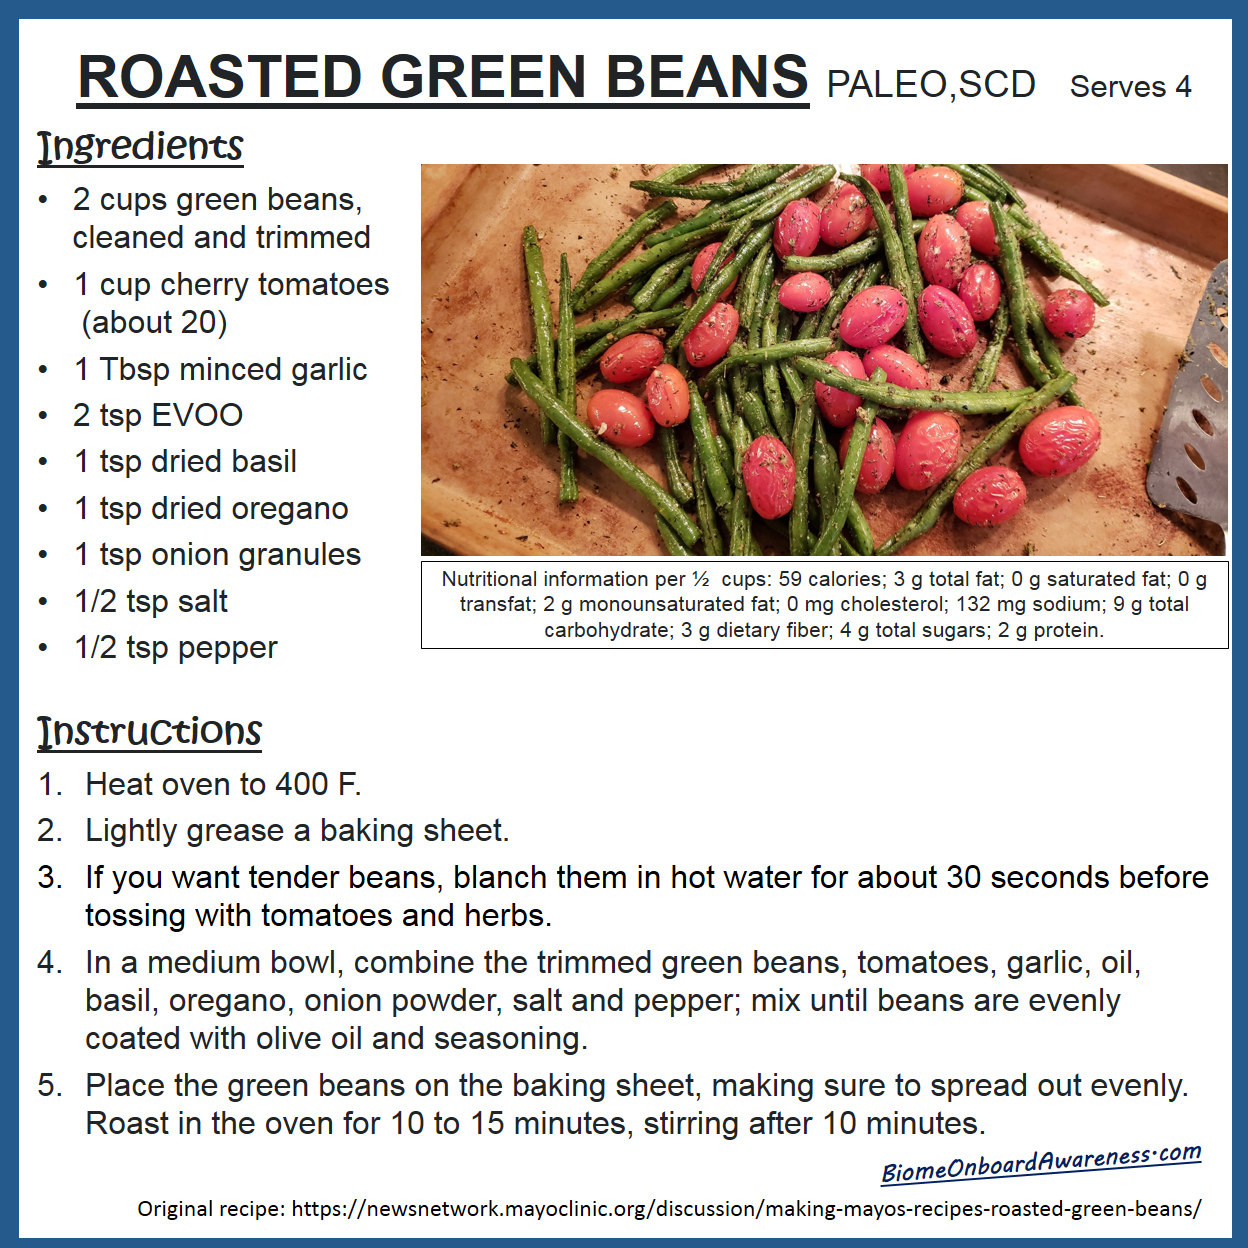 Ingredients: 2 cups green beans, cleaned and